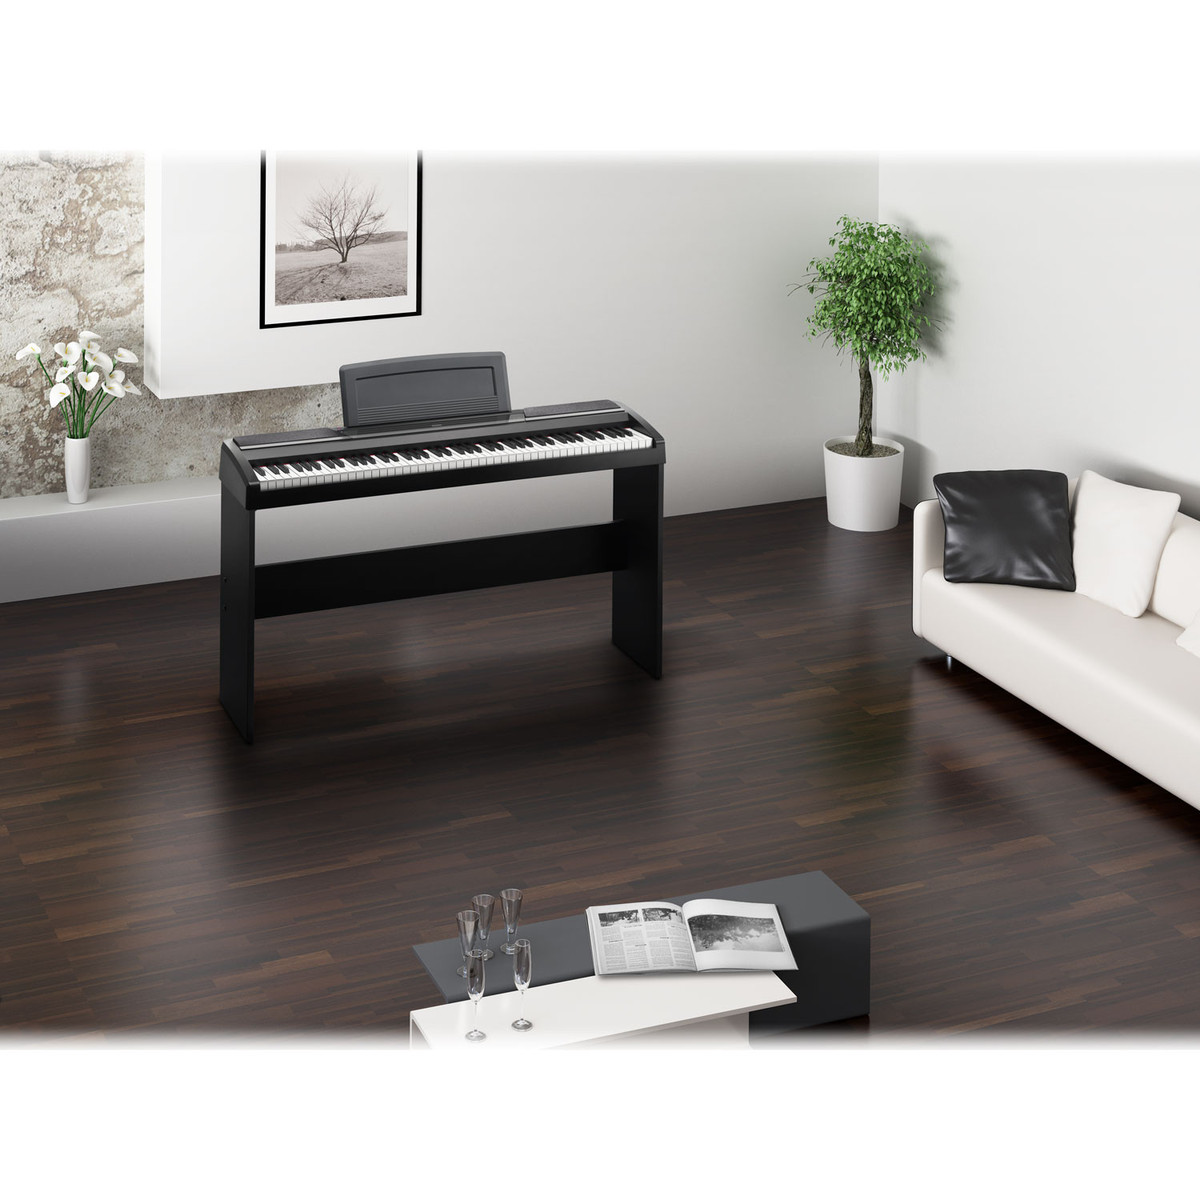 Korg SP-170S Compact Piano, Black + Stand, Bench and Headphones 5